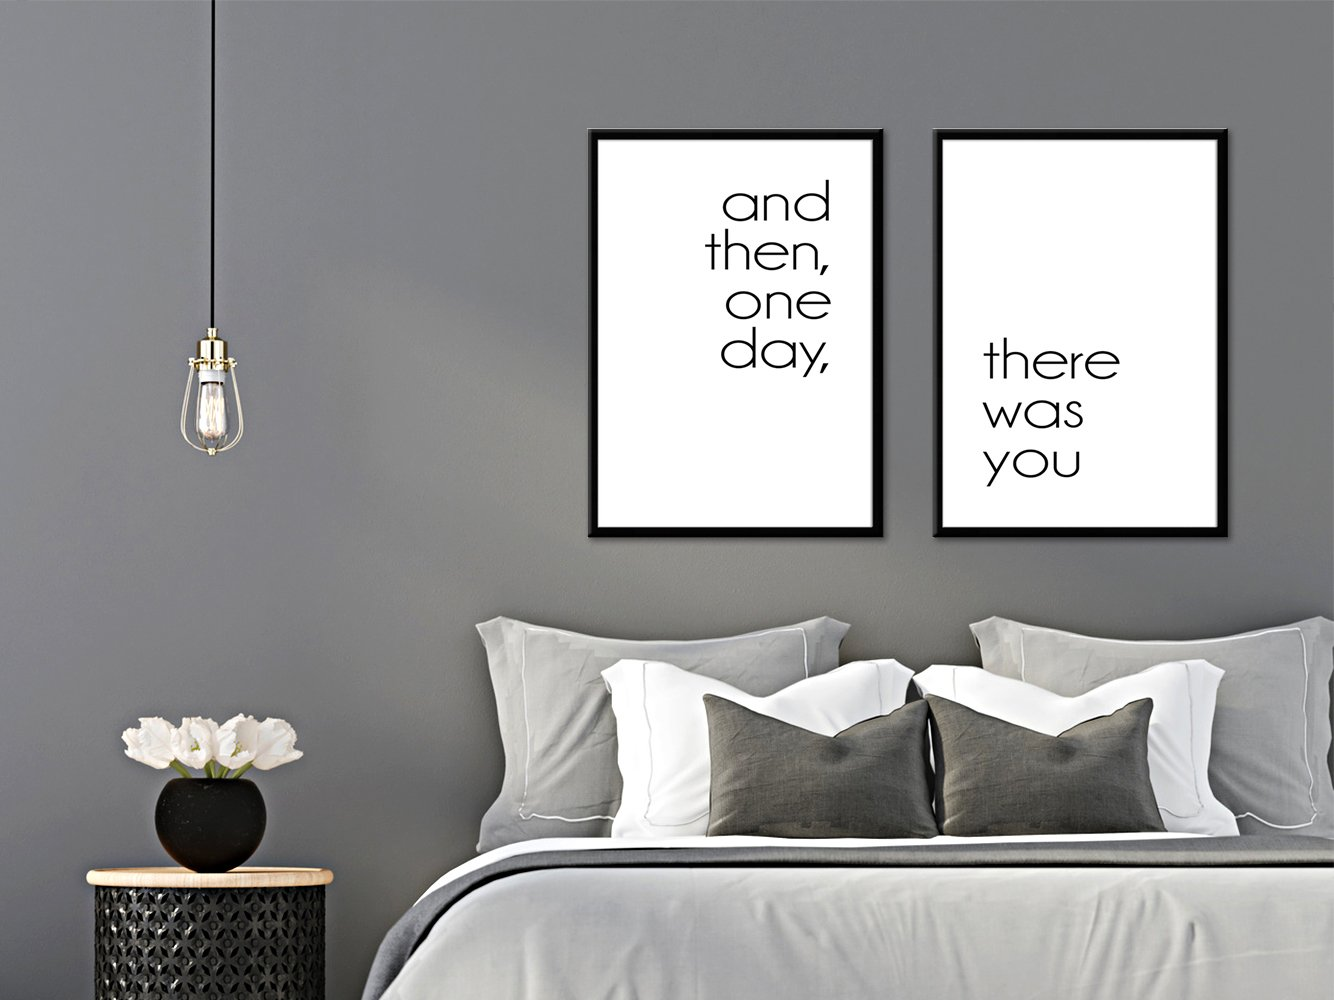 Artissimo, Set Set Set Spruchbilder gerahmt, 2 Stück je 51x71cm, PE6225-ER, and Then, One Day, There was You, Bild, Wandbild, Wanddekoration, Poster mit Spruch, Typographie, Typografie f48384